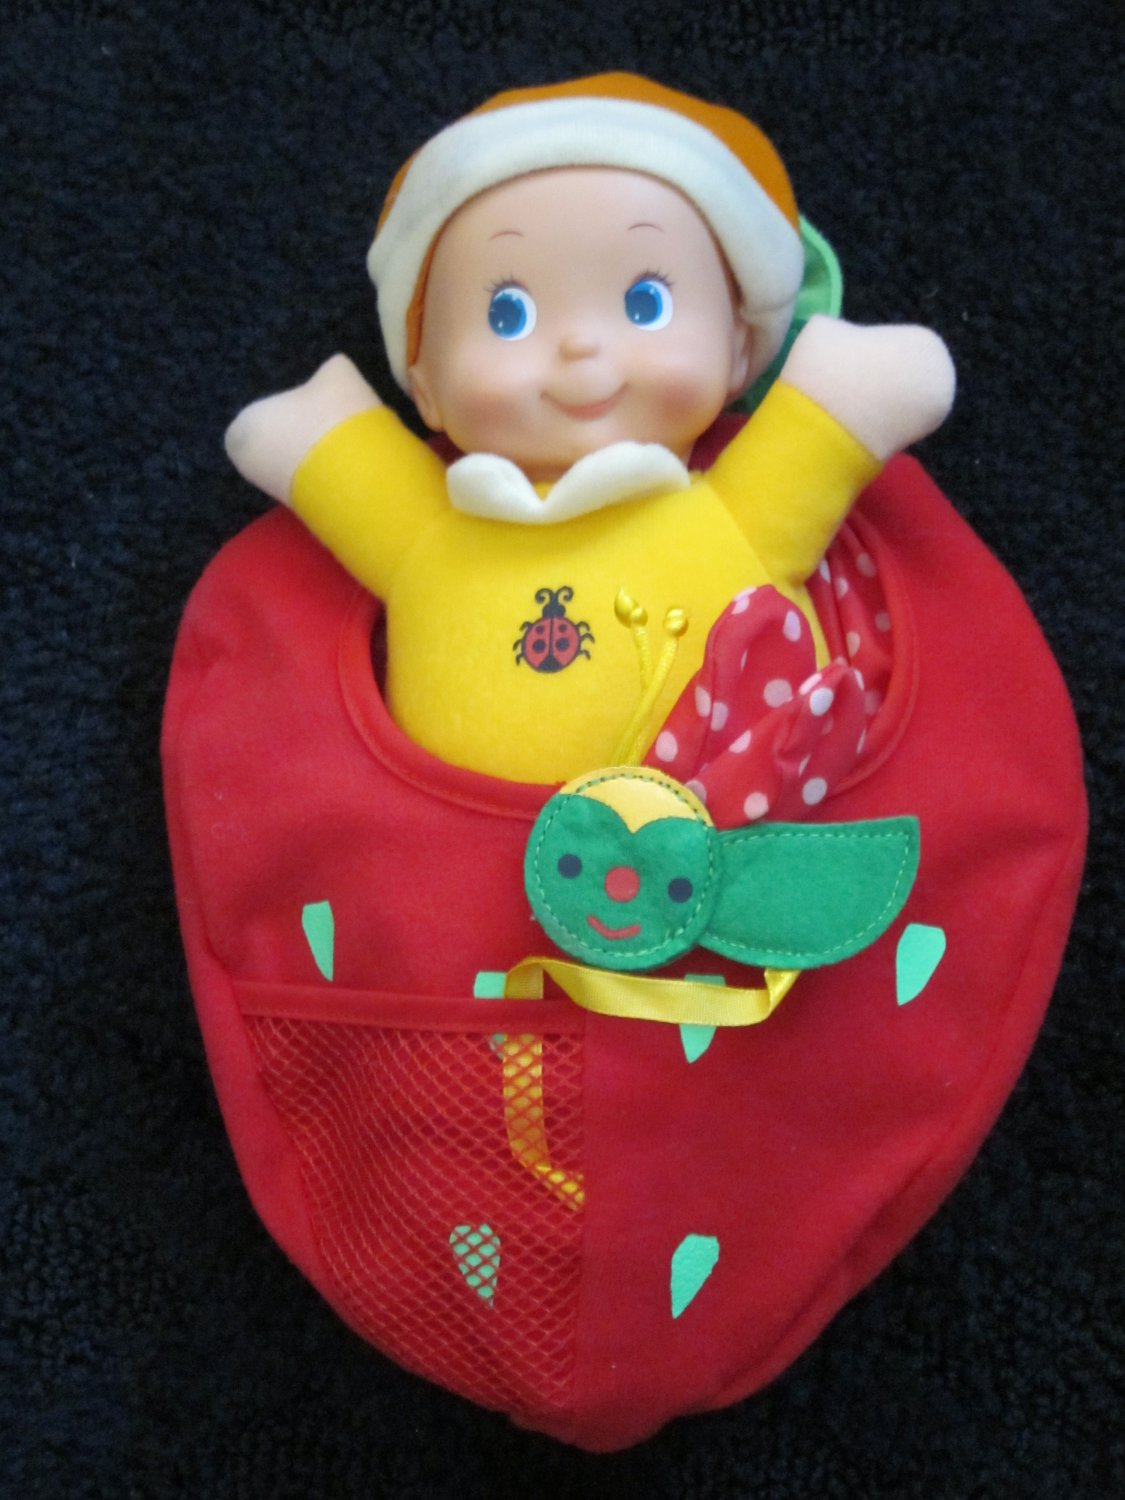 City Toys Doll with lady bug tucked in a Strawberry